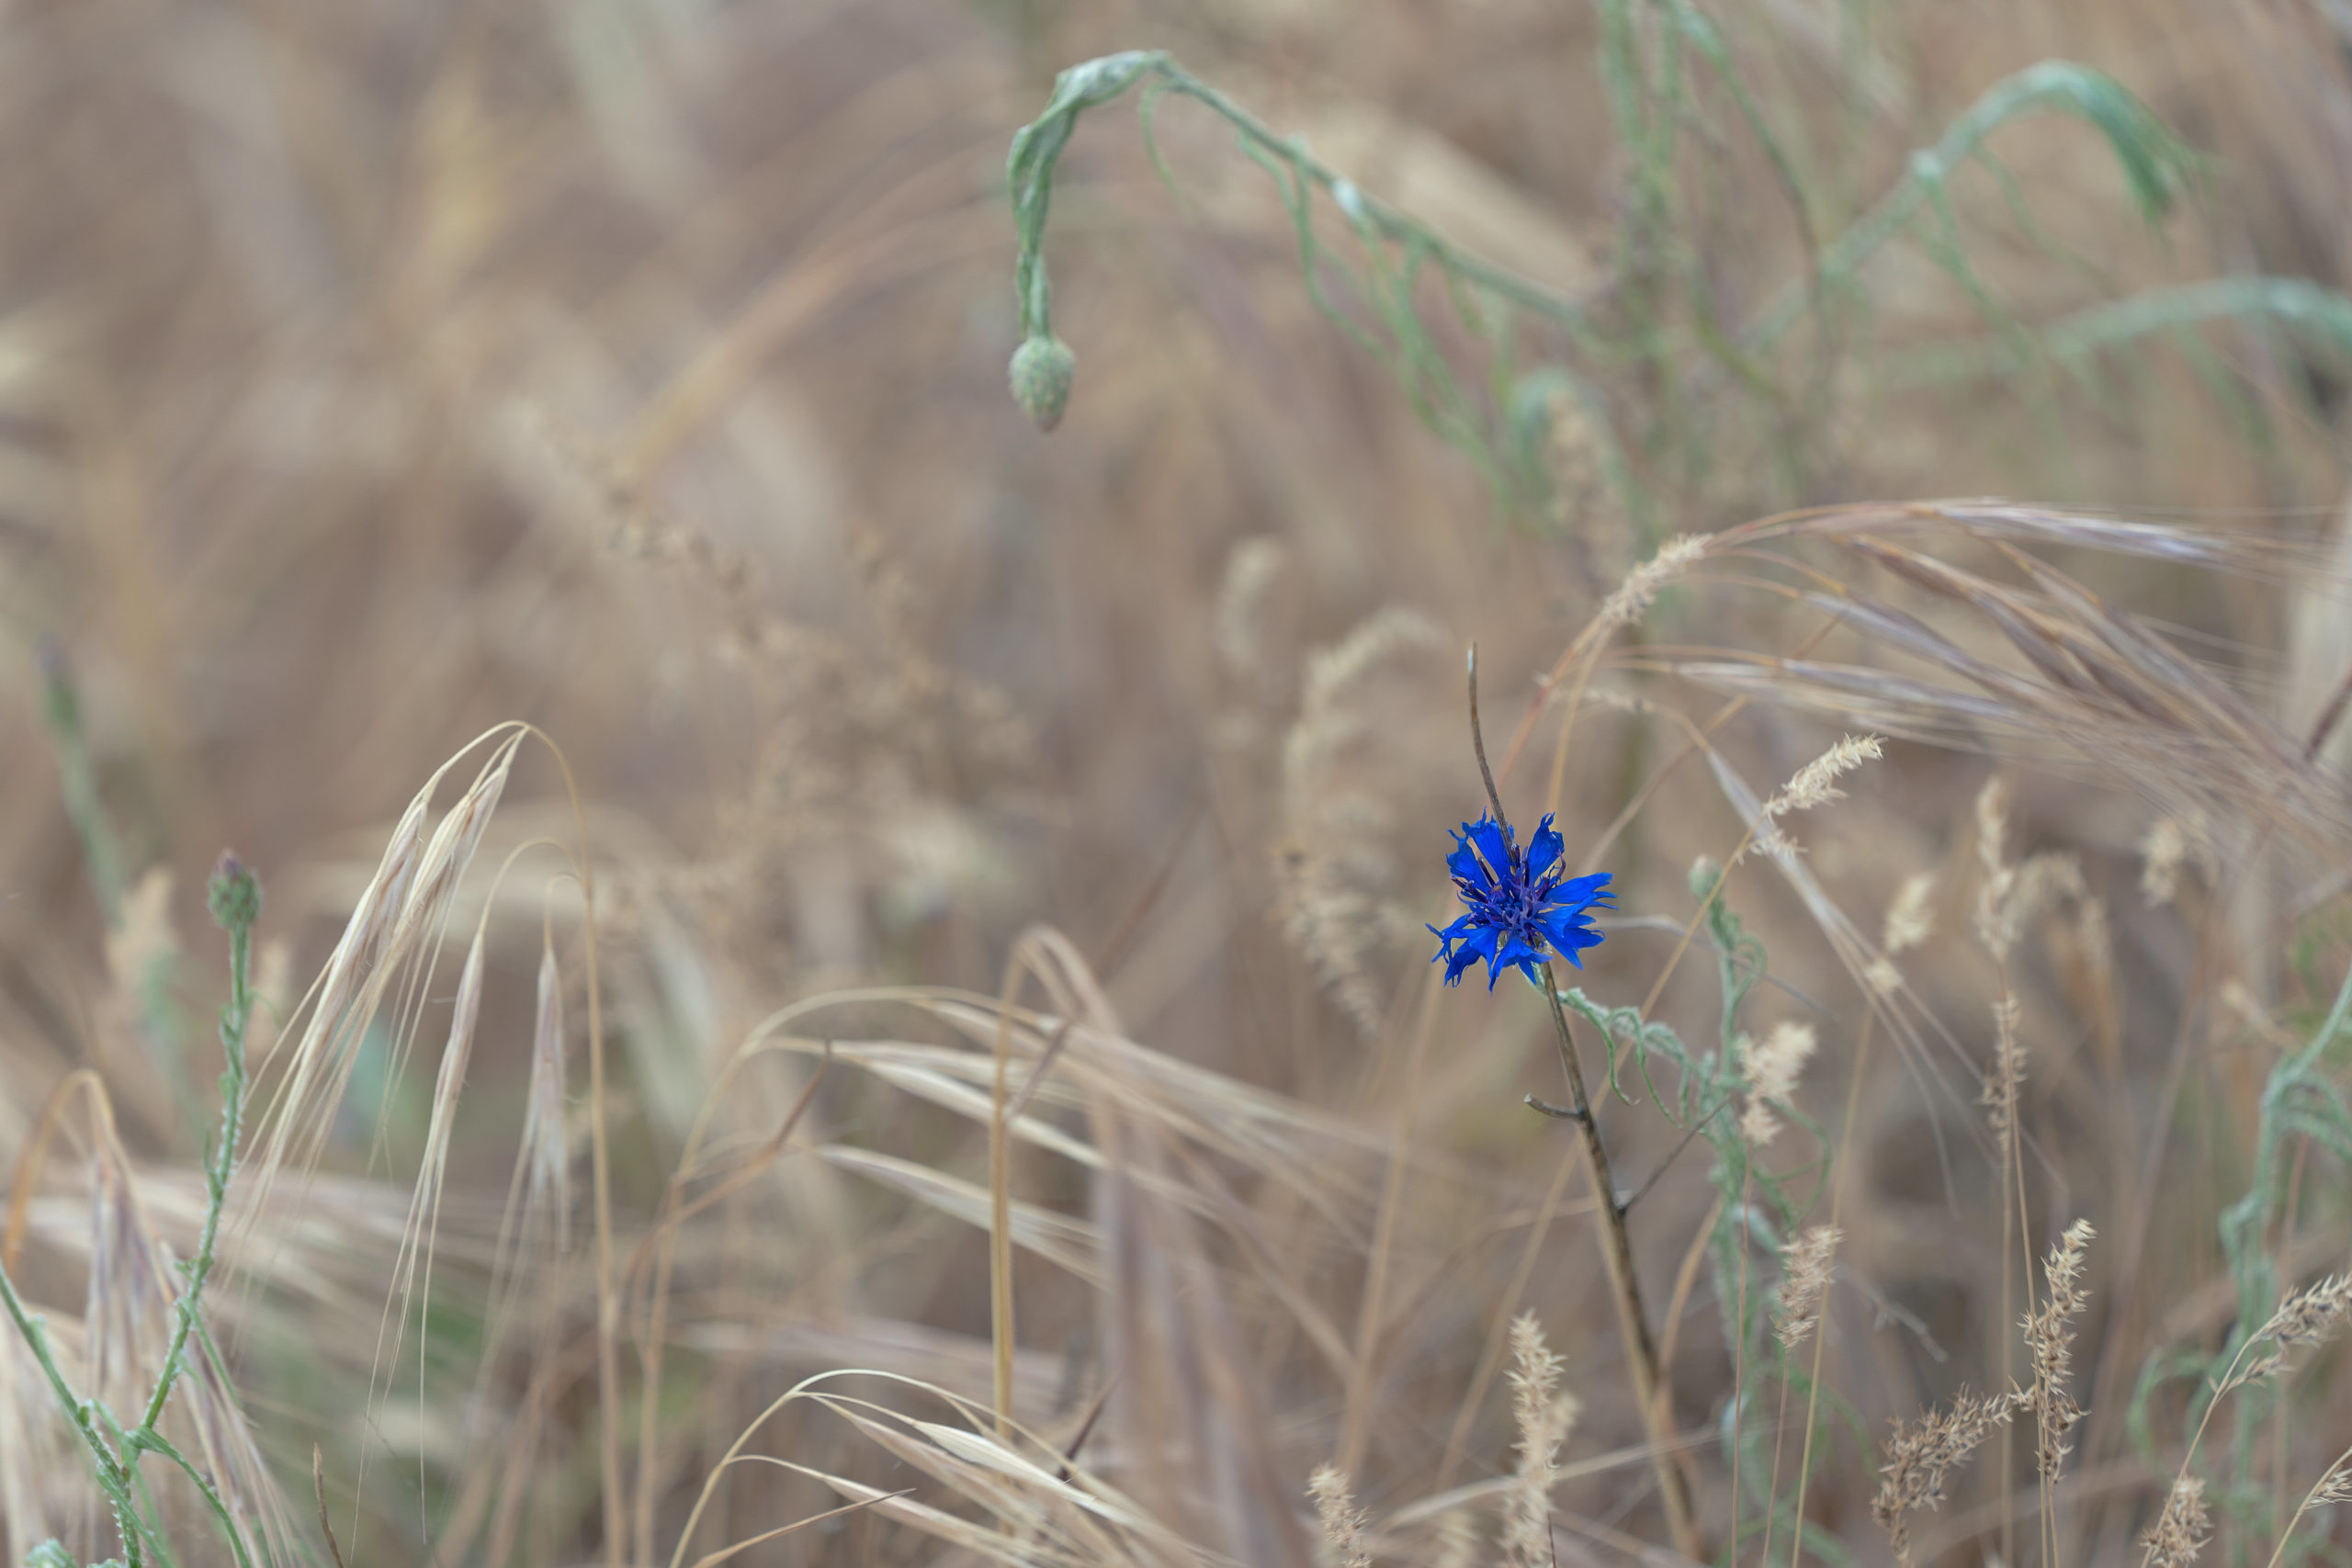 Flower in the rough.